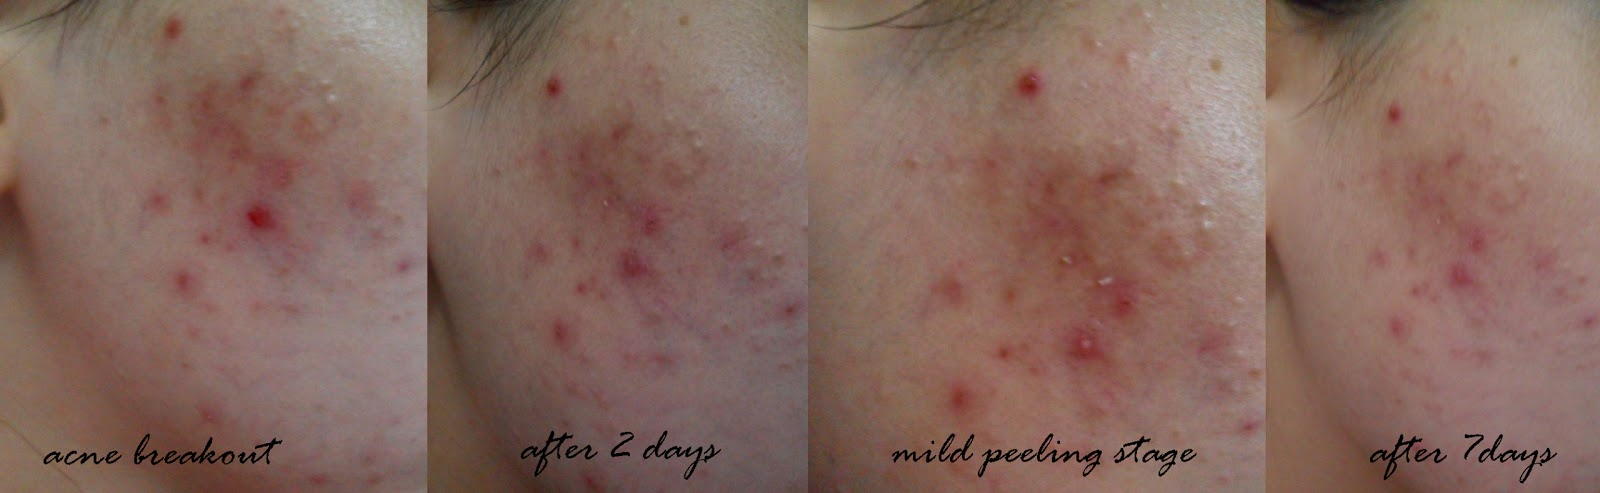 Solutions for acne on back